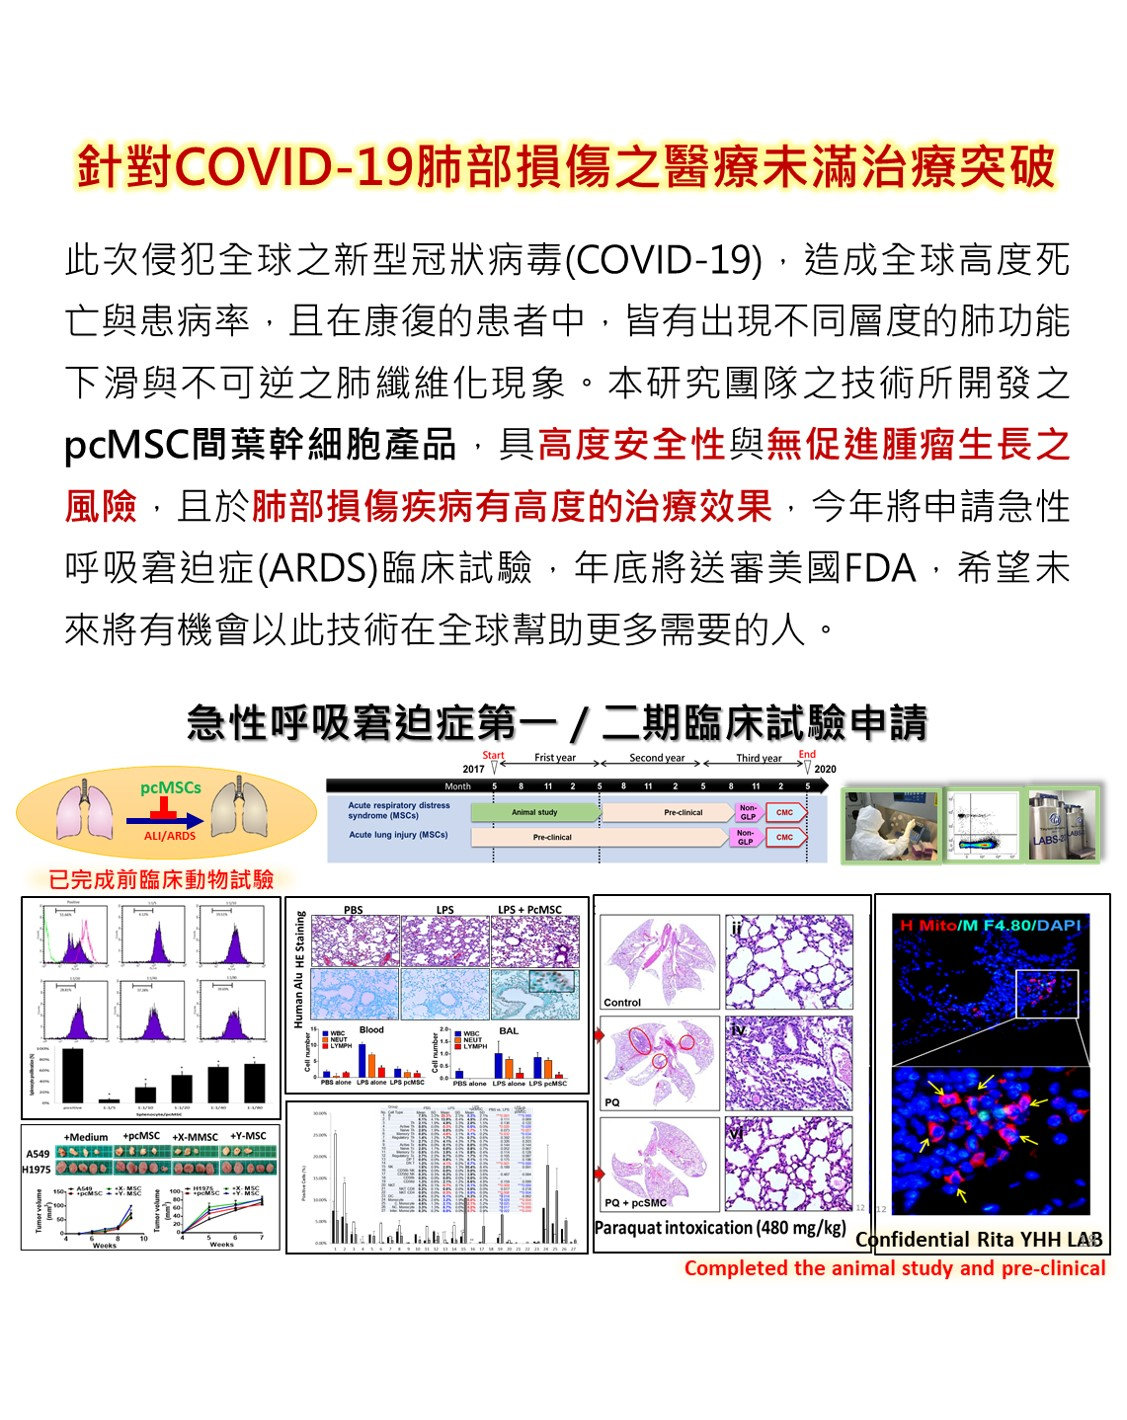 Targeting COVID-19 Acute Lung Injury Allogeneic Systemic Safety Cell Therapy Product Development: Low- Risk in Tumor Promotion Mesenchymal-Stem-cell Products derived from Maternal Placenta